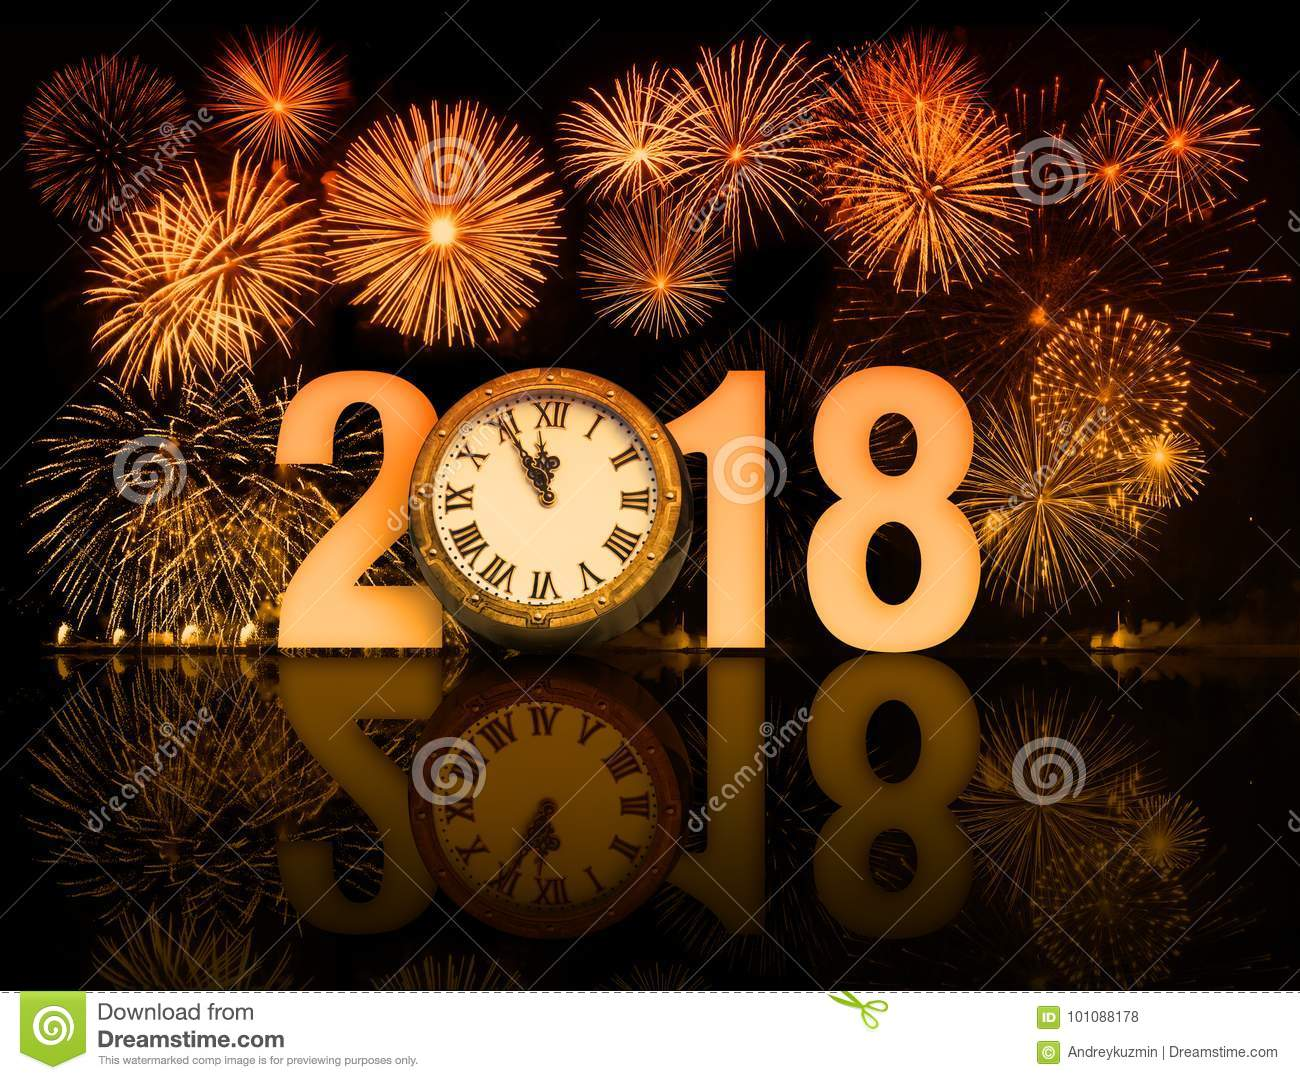 new year 2018 fireworks with clock face